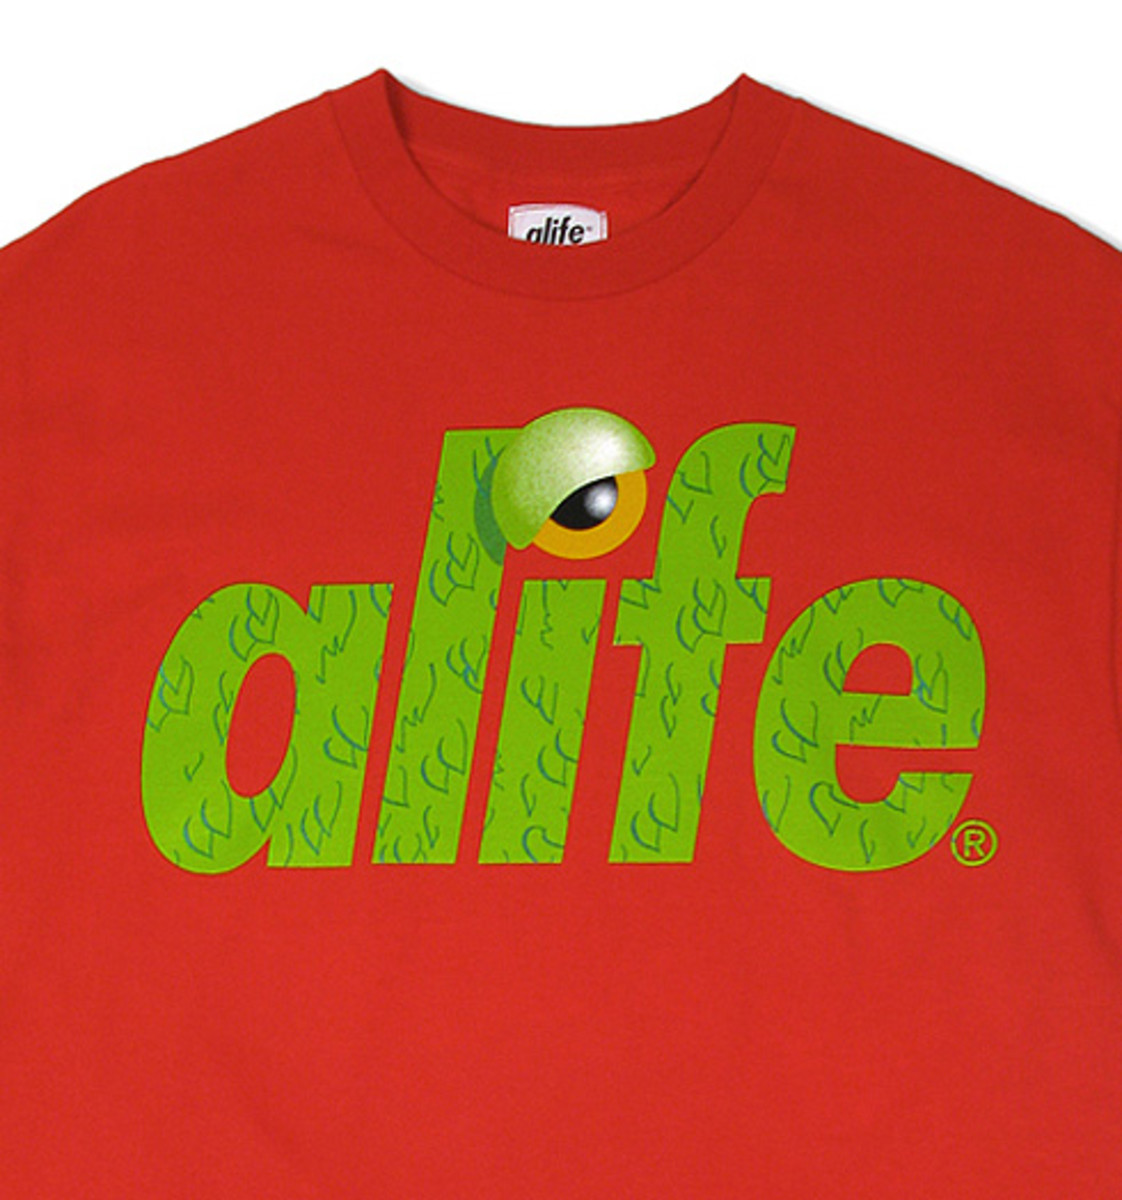 alife_monster_tee_04.jpg